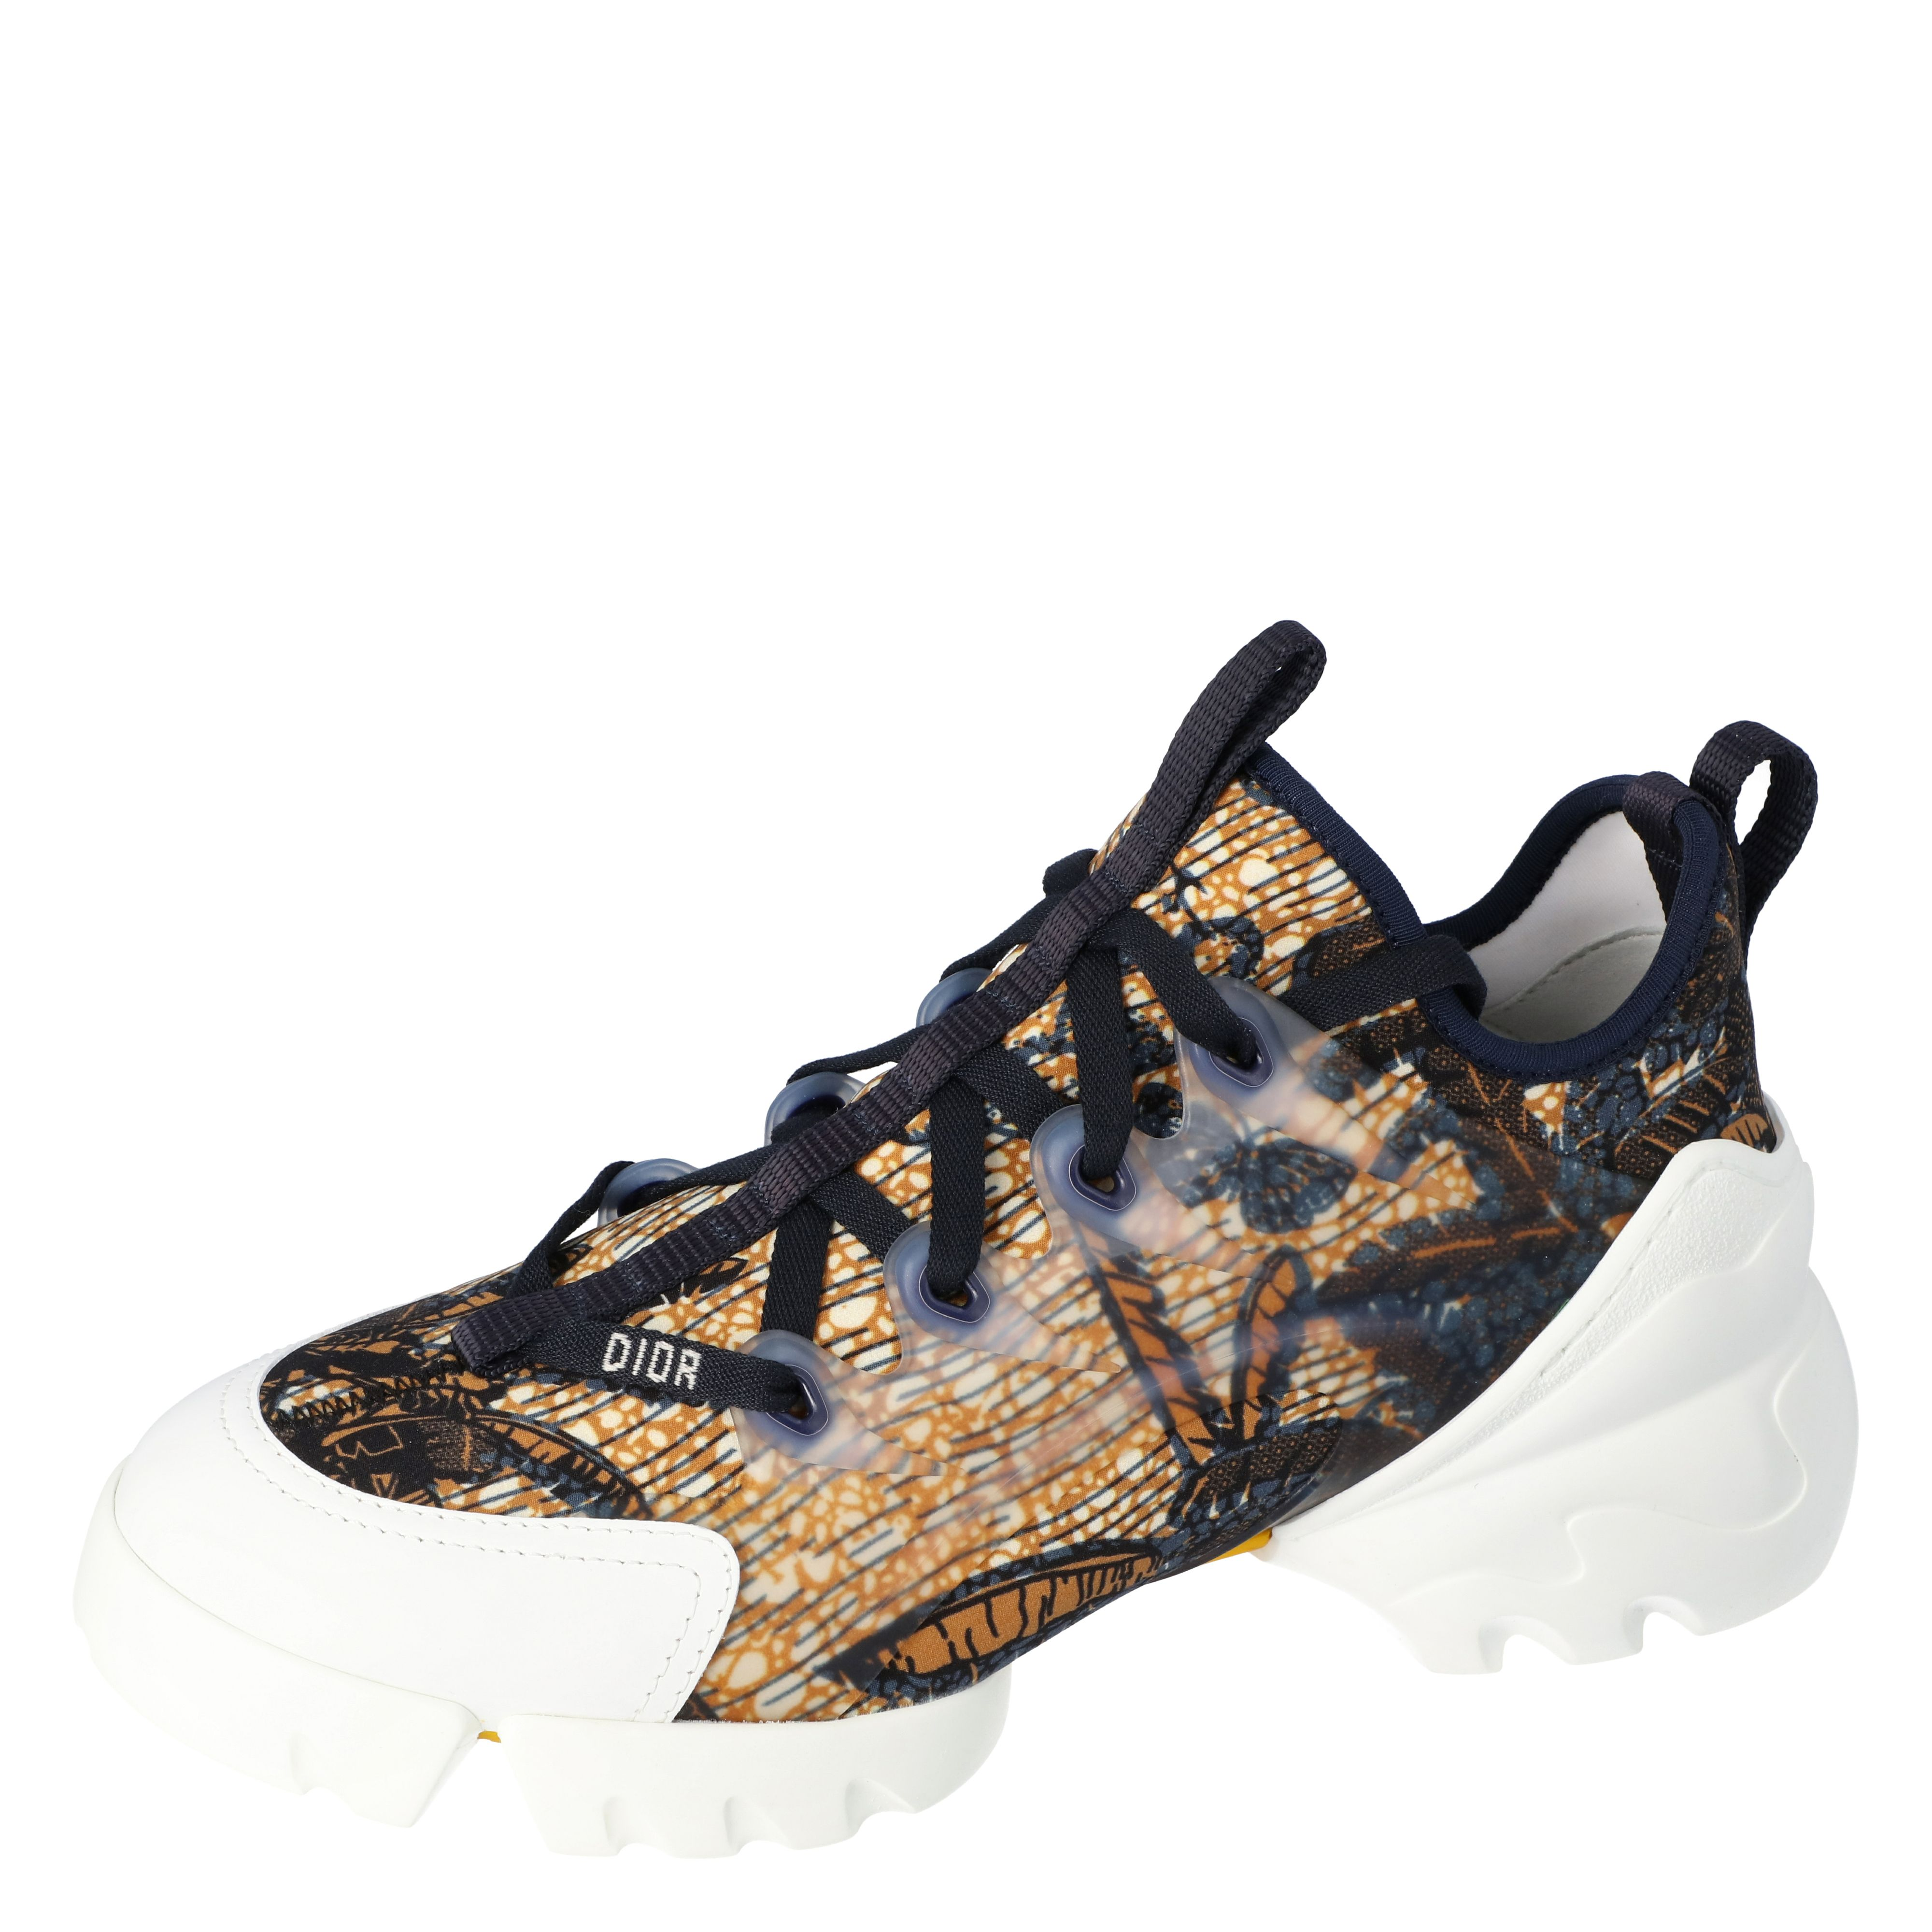 Dior Multicolor Tropicalia Print Technical Fabric D-Connect Platform Sneakers Size 37.5